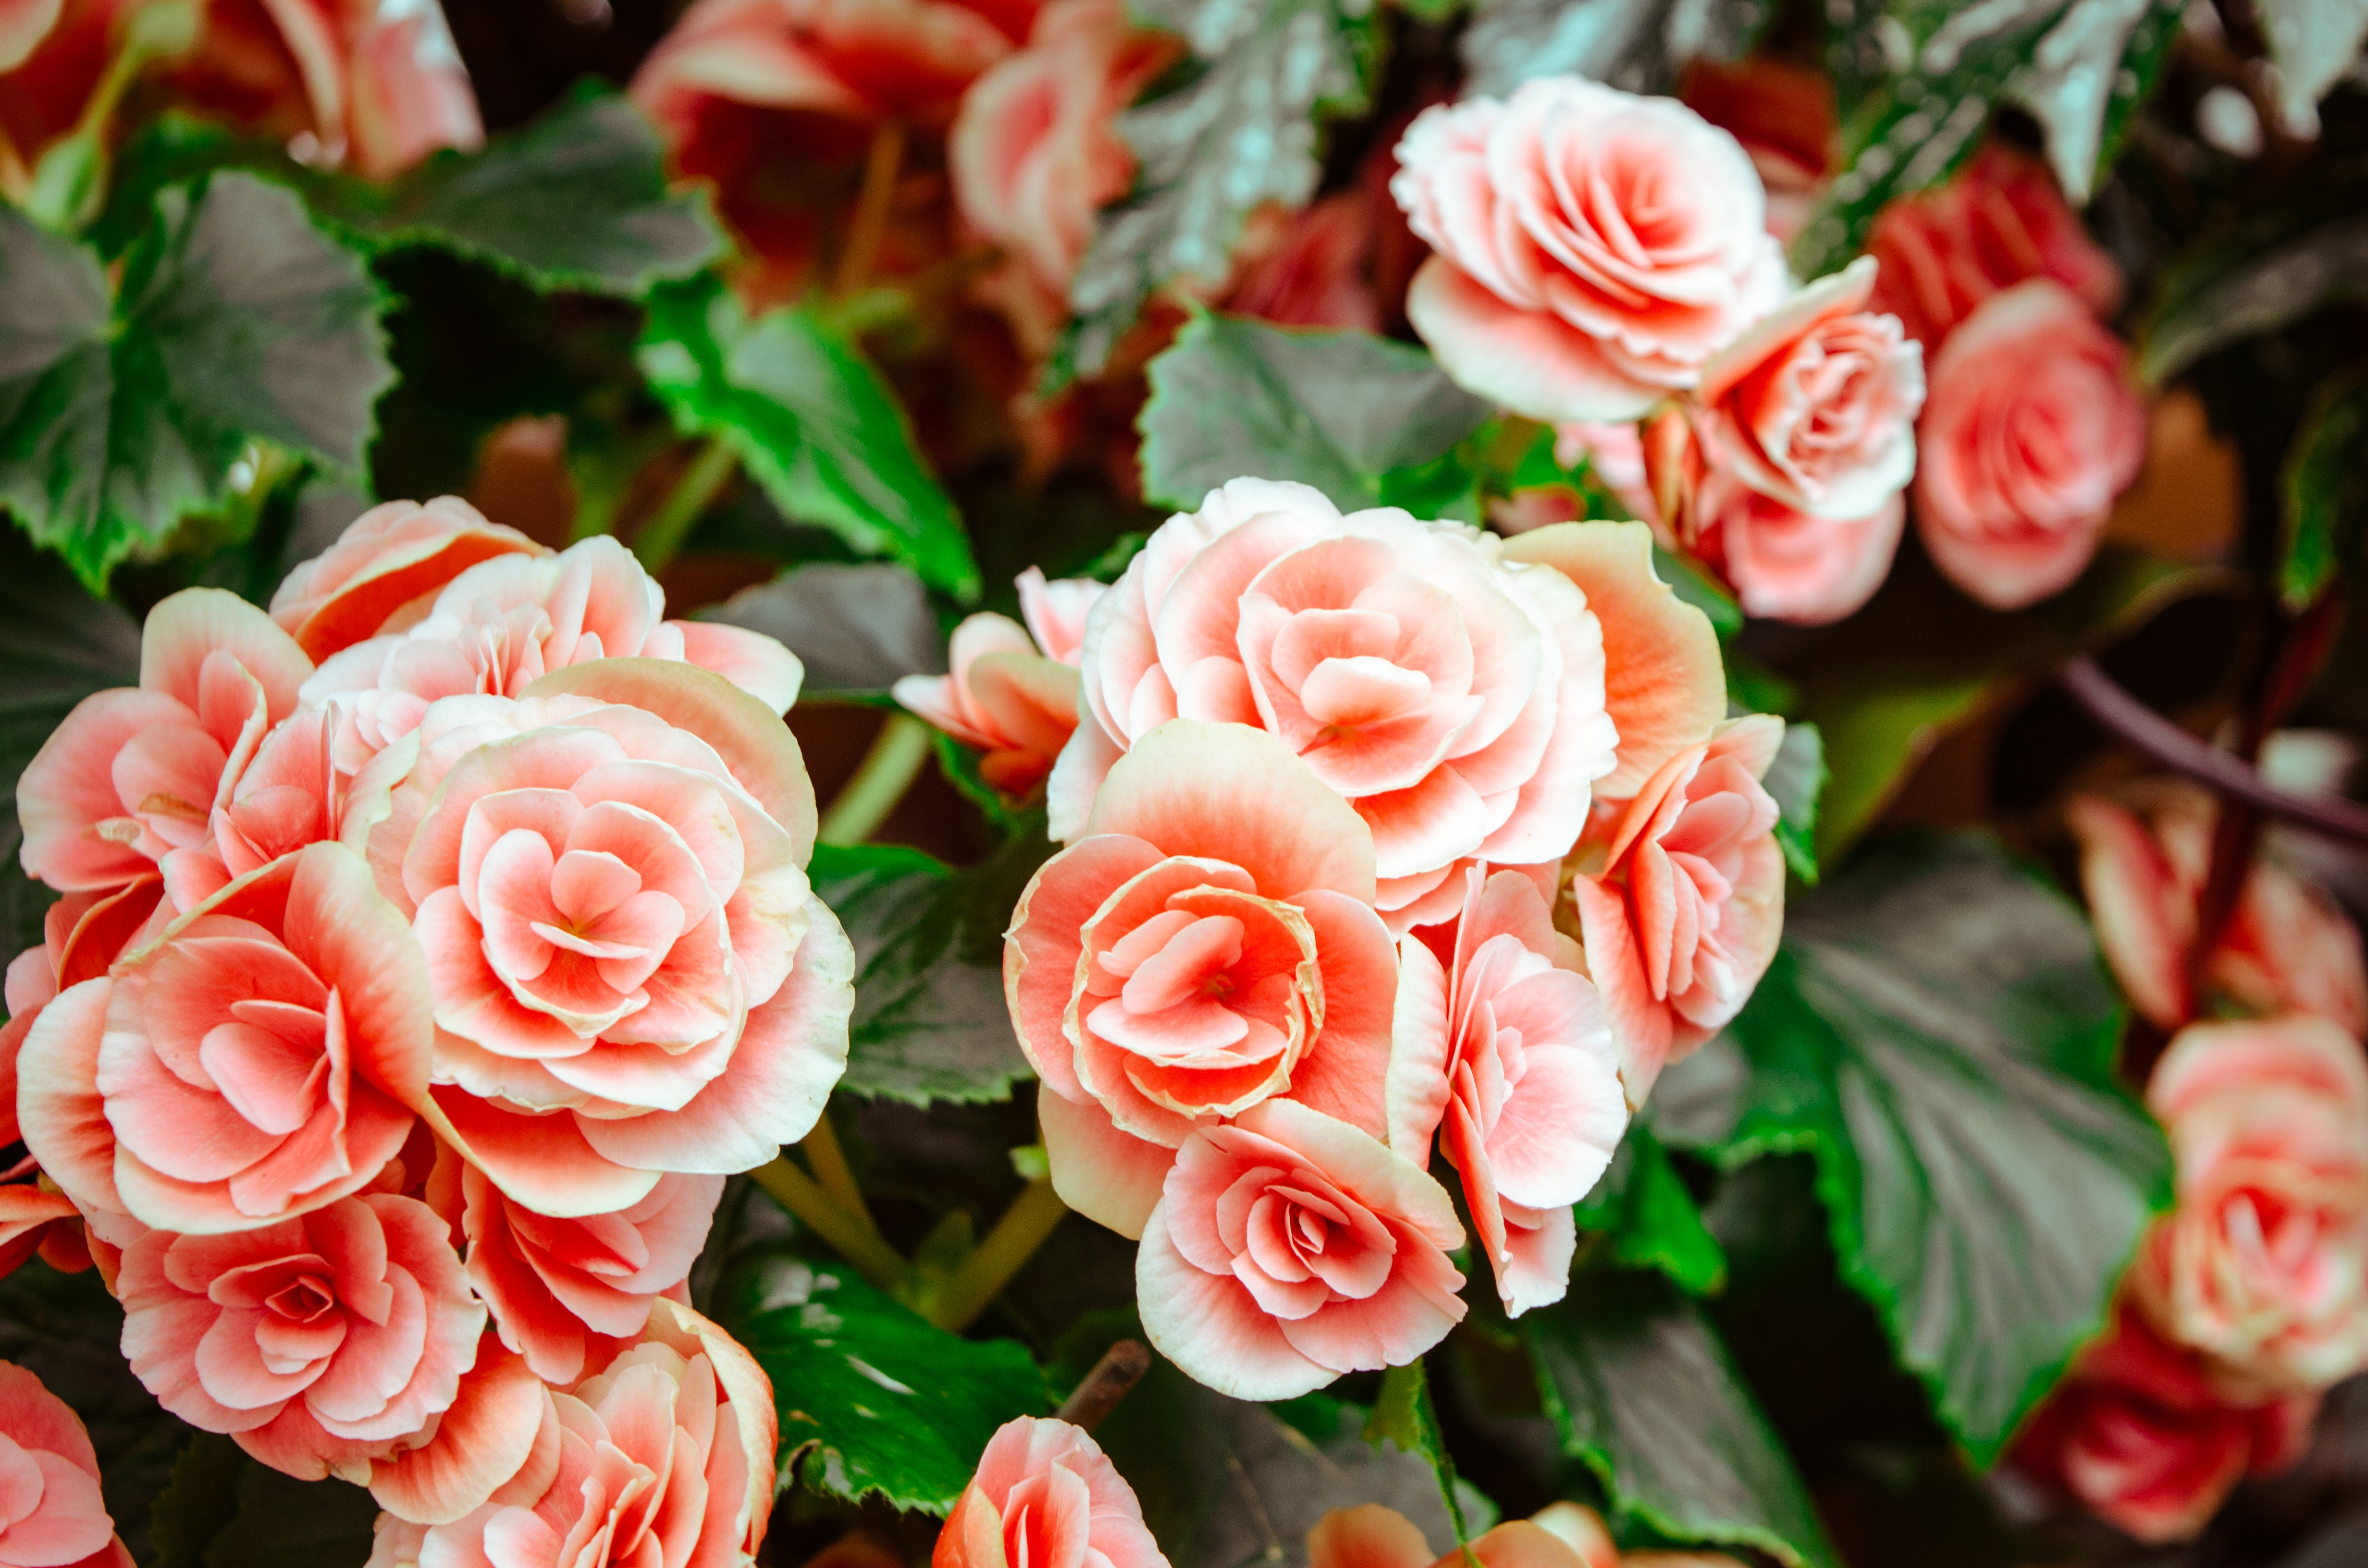 1000 engaging pink roses photos pexels free stock photos pink flowers and green leaves fetching more photos mightylinksfo